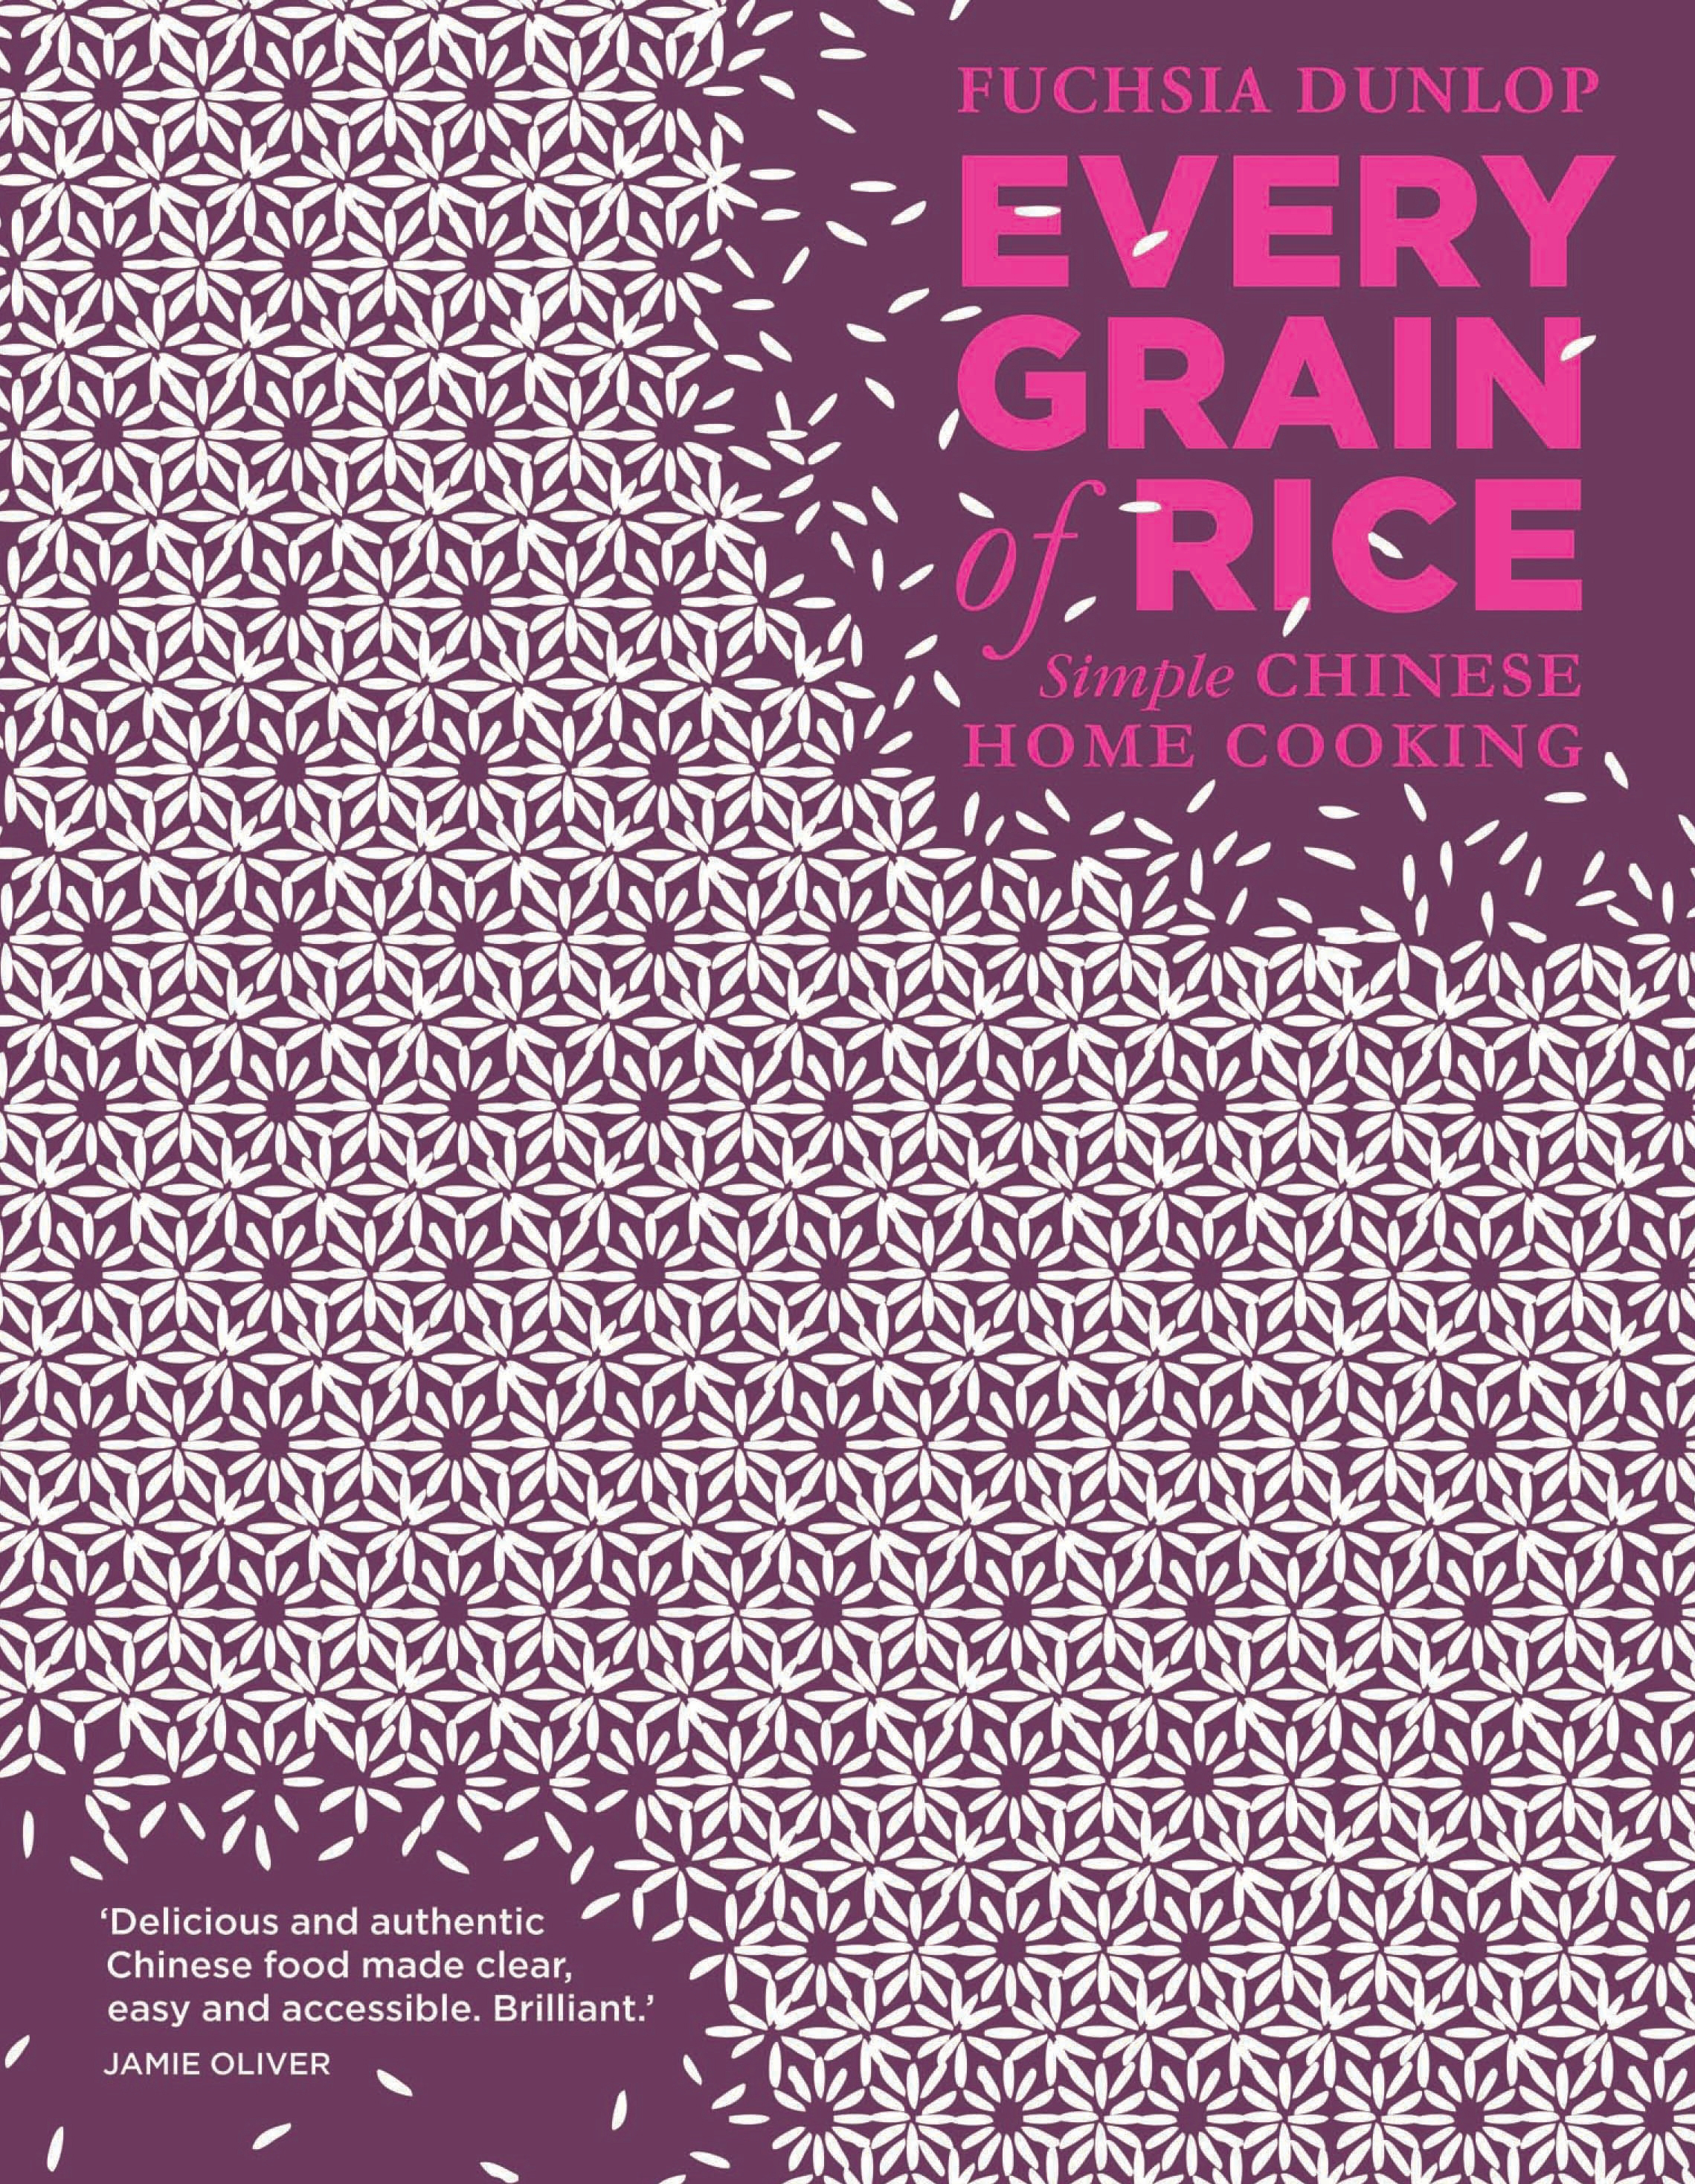 Every Grain of Rice by Fuchsia Dunlop, ISBN: 9781408802526